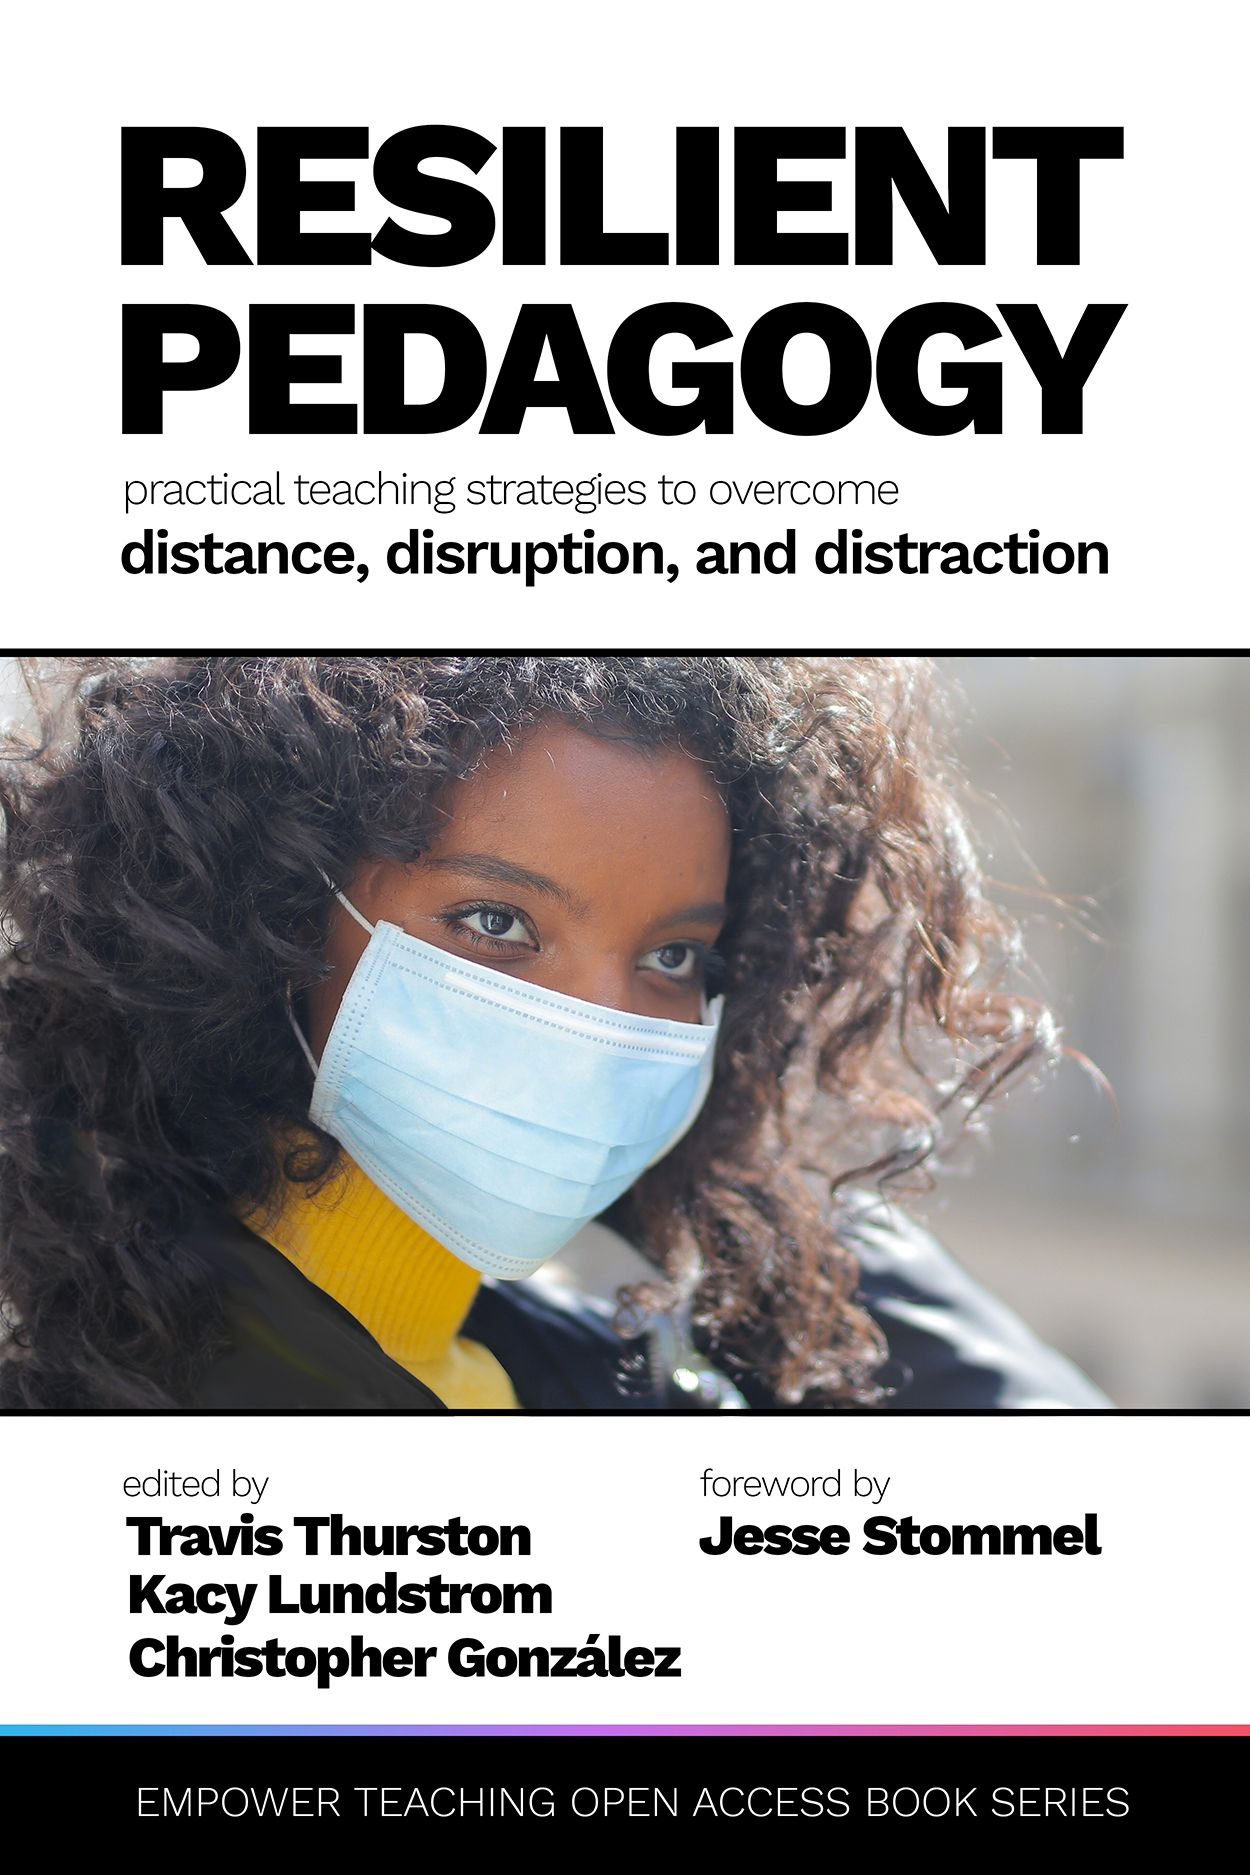 The cover for the book, Resilient Pedagogy: Practical Teaching Strategies to Overcome Distance, Disruption, and Distraction, edited by Travis N Thurston, Kacy Lundstrom, and Christopher González